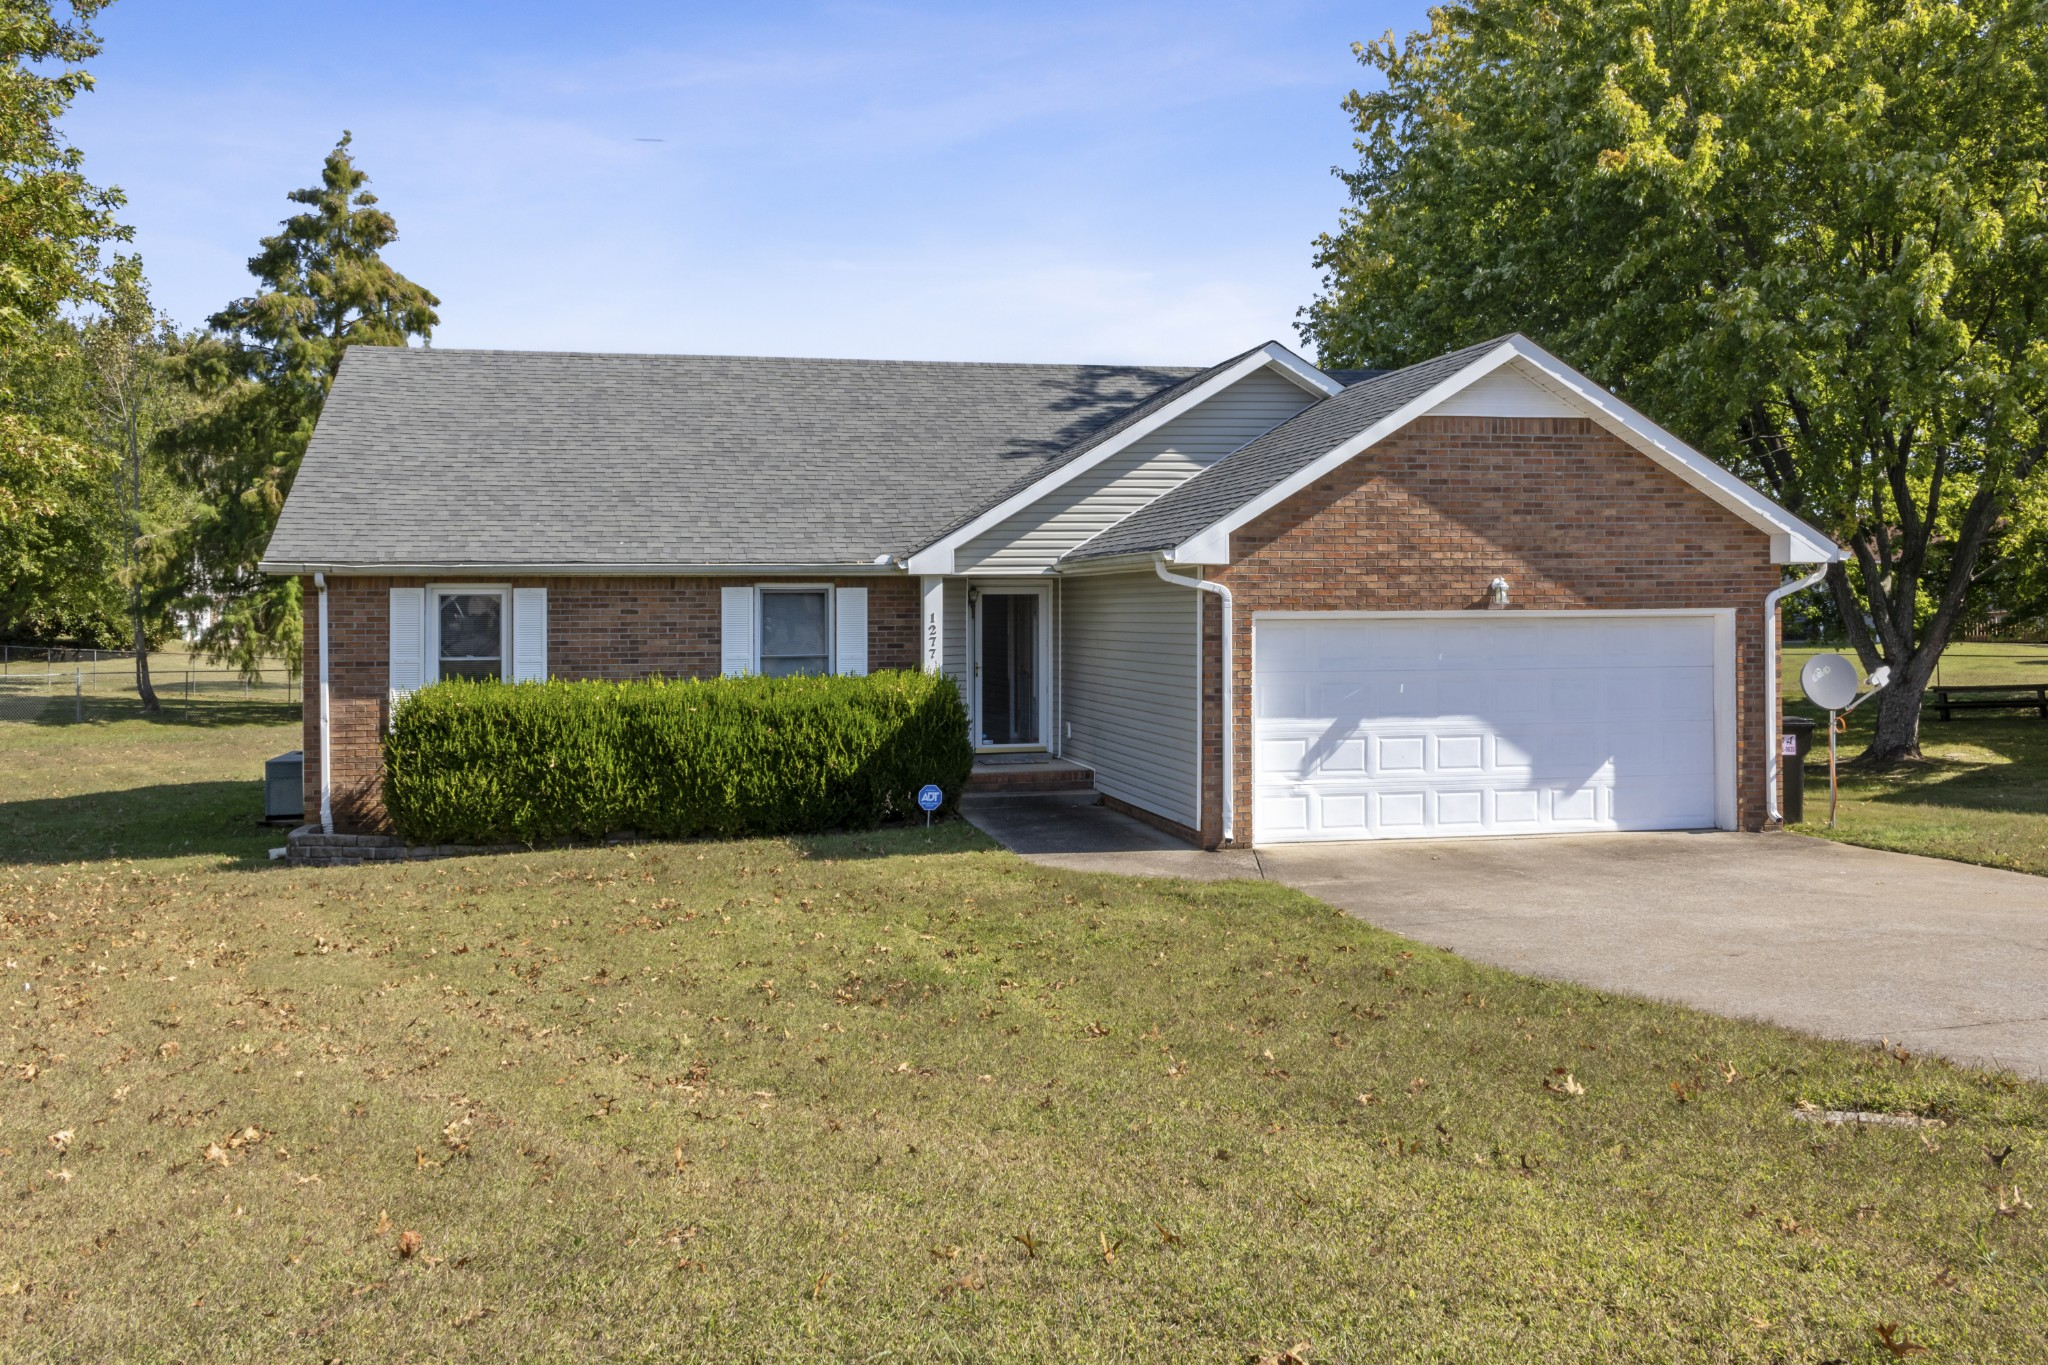 1277 Cheryl Ct Property Photo - Clarksville, TN real estate listing